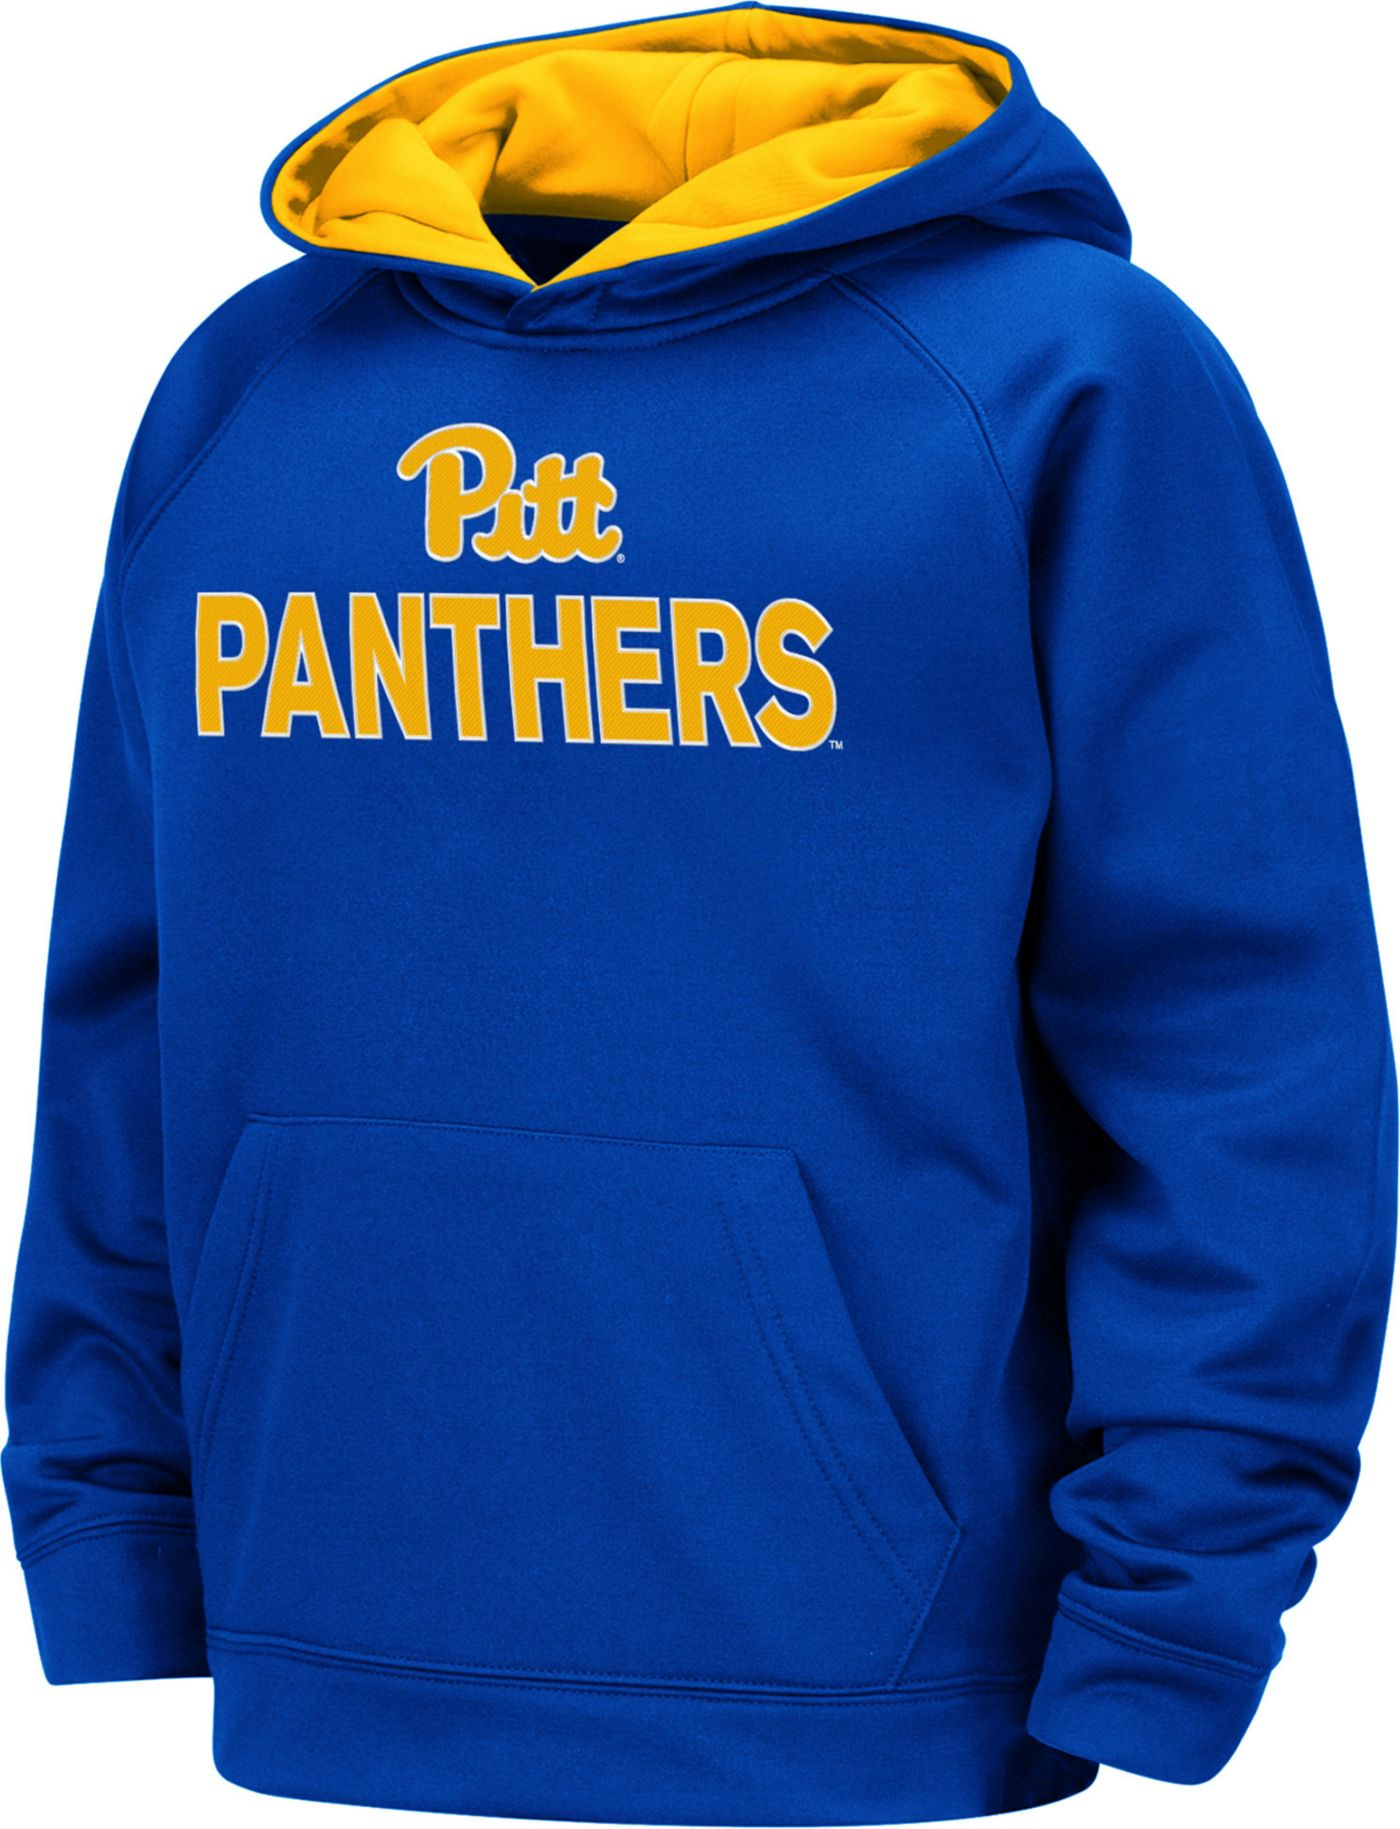 Colosseum Boys' Pitt Panthers Blue Pullover Hoodie